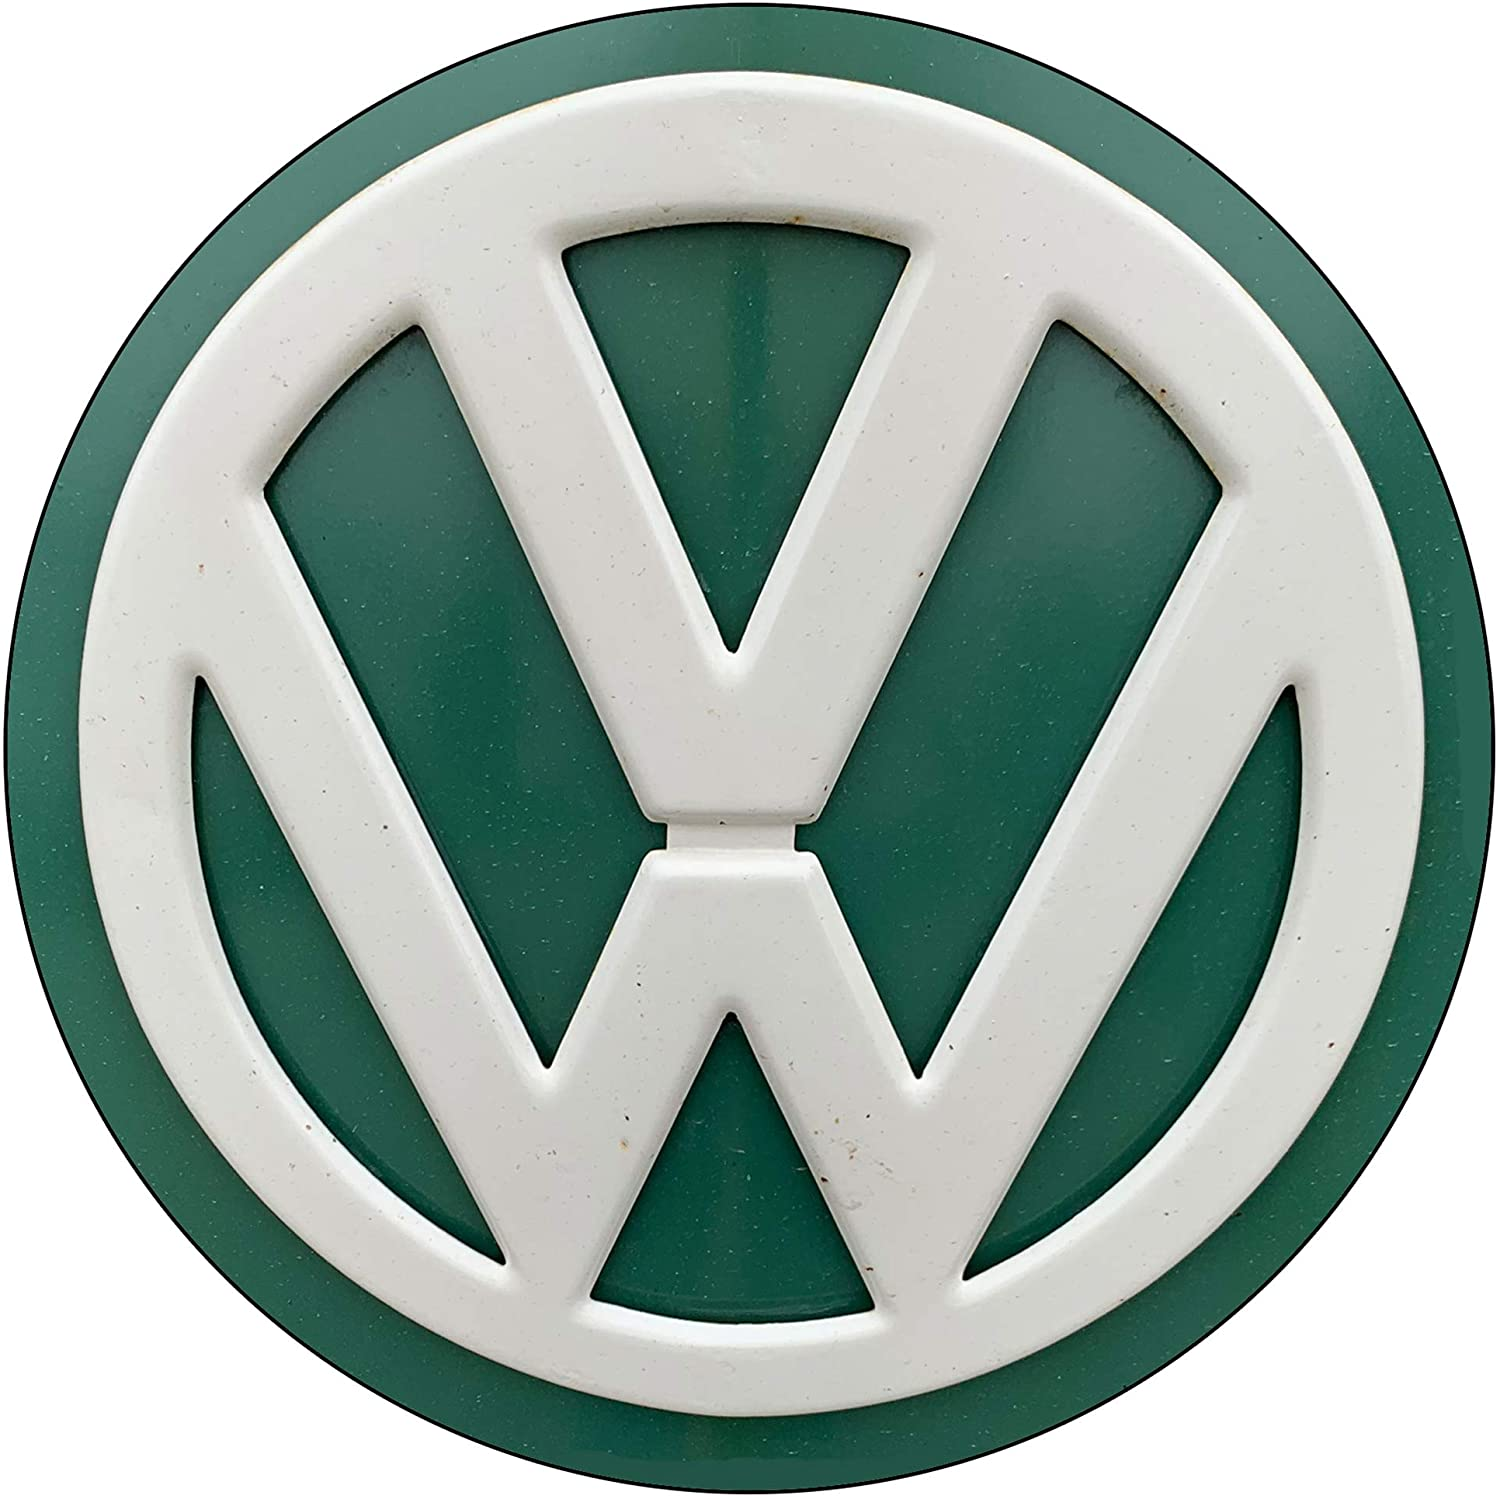 Brotherhood Vintage Gas Sign Reproduction Vintage Metal Signs Round Metal Tin Sign for Garage and Home 8 Inch Diameter – Volkswagon Bus Emblem